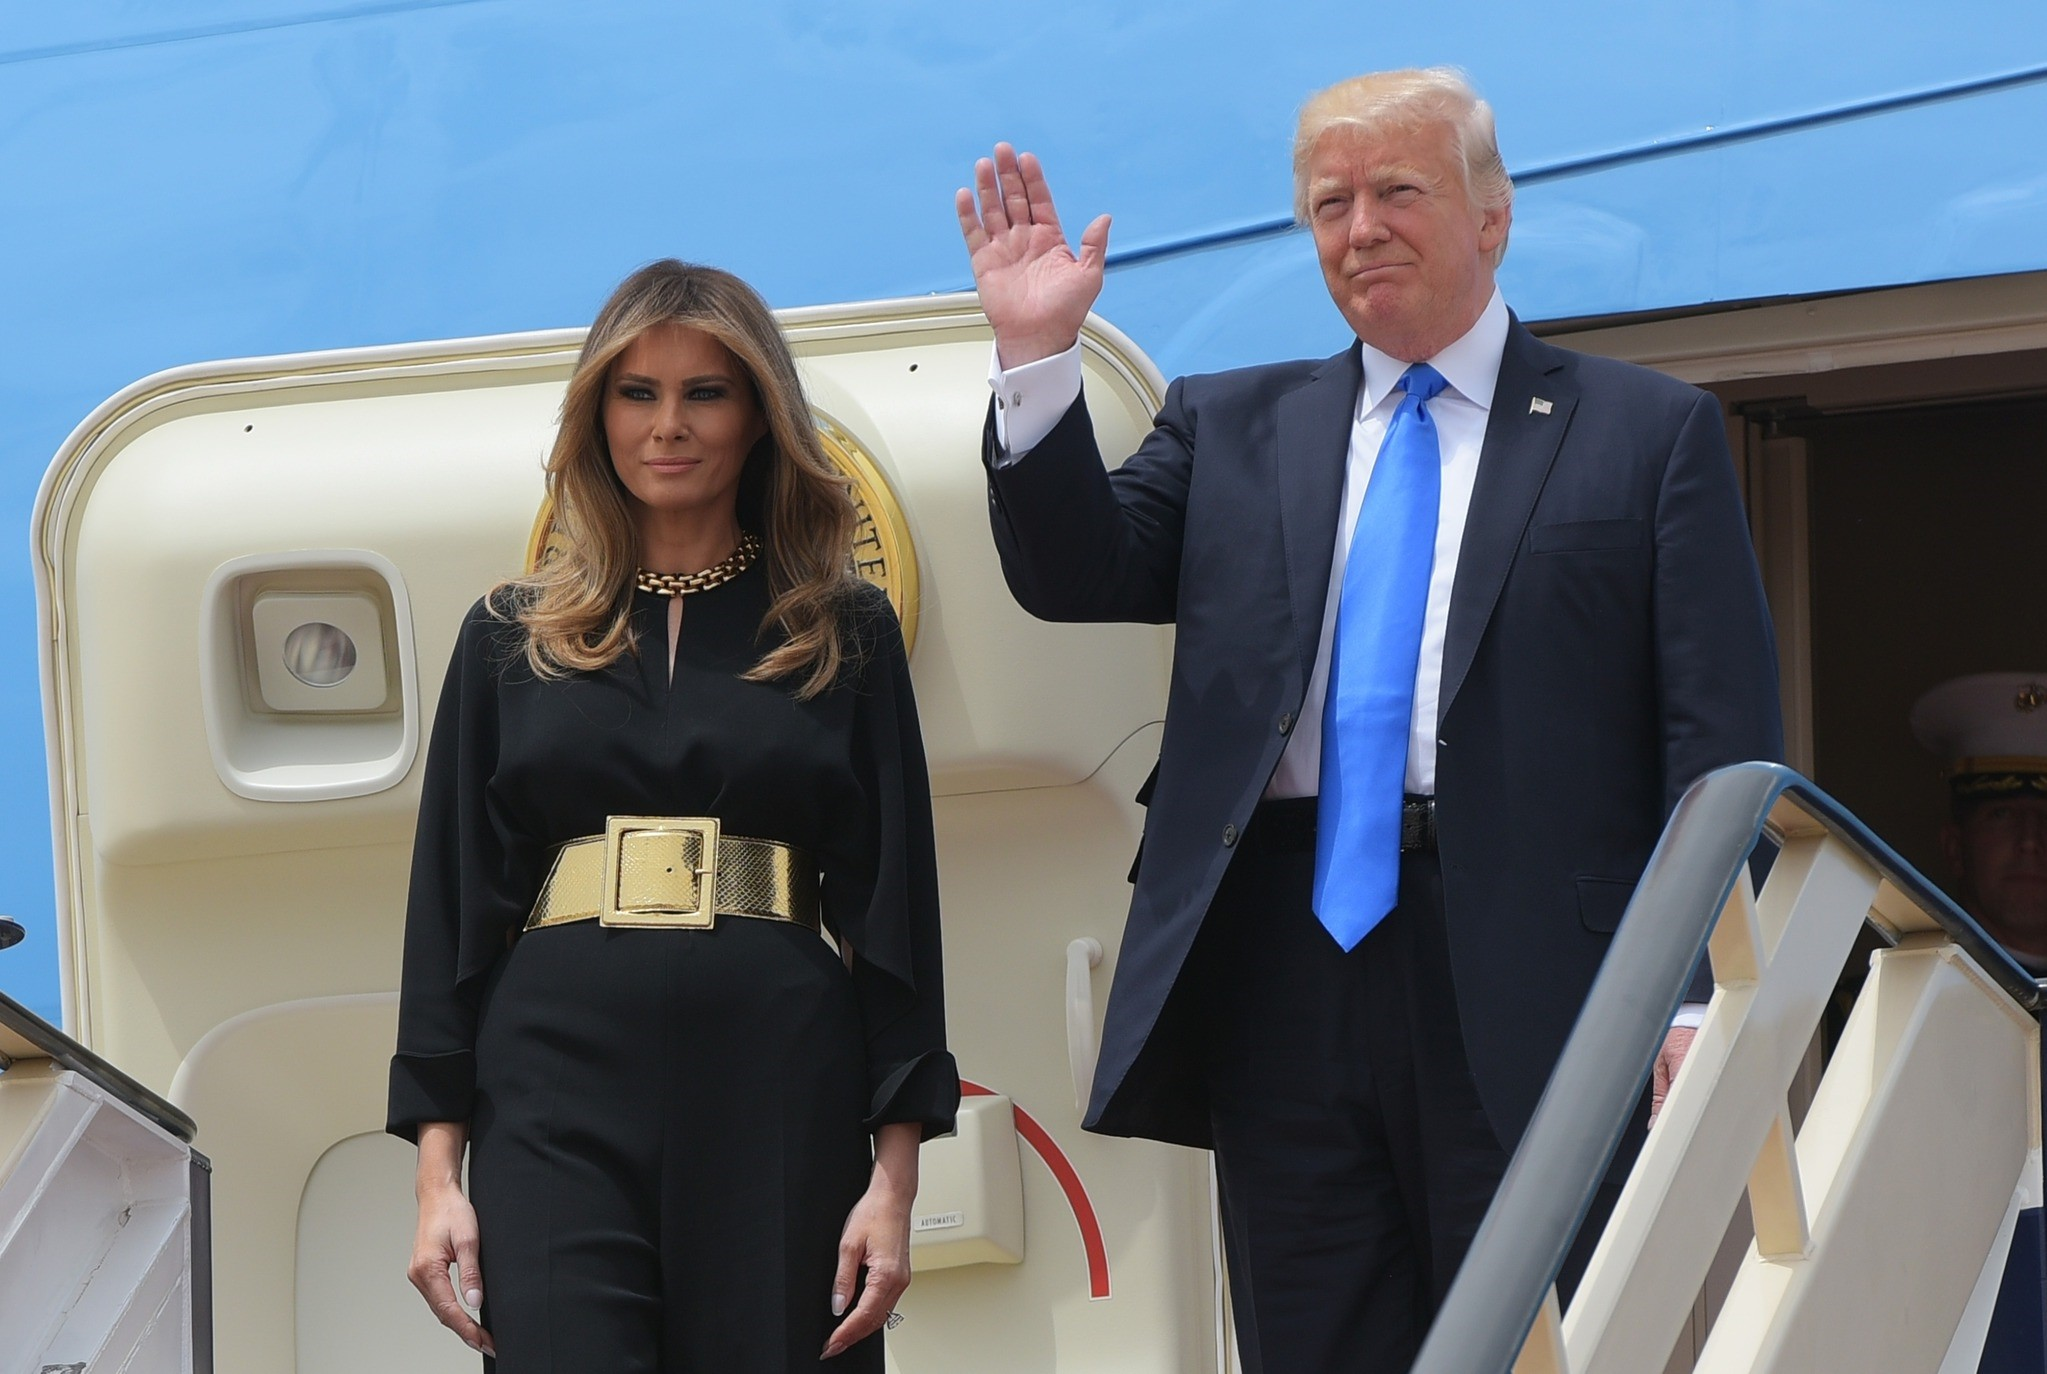 President Donald Trump and first lady Melania arrive for a welcome ceremony at the Royal Terminal of King Khalid International Airport, May 20, 2017, in Riyadh. (AFP Photo)